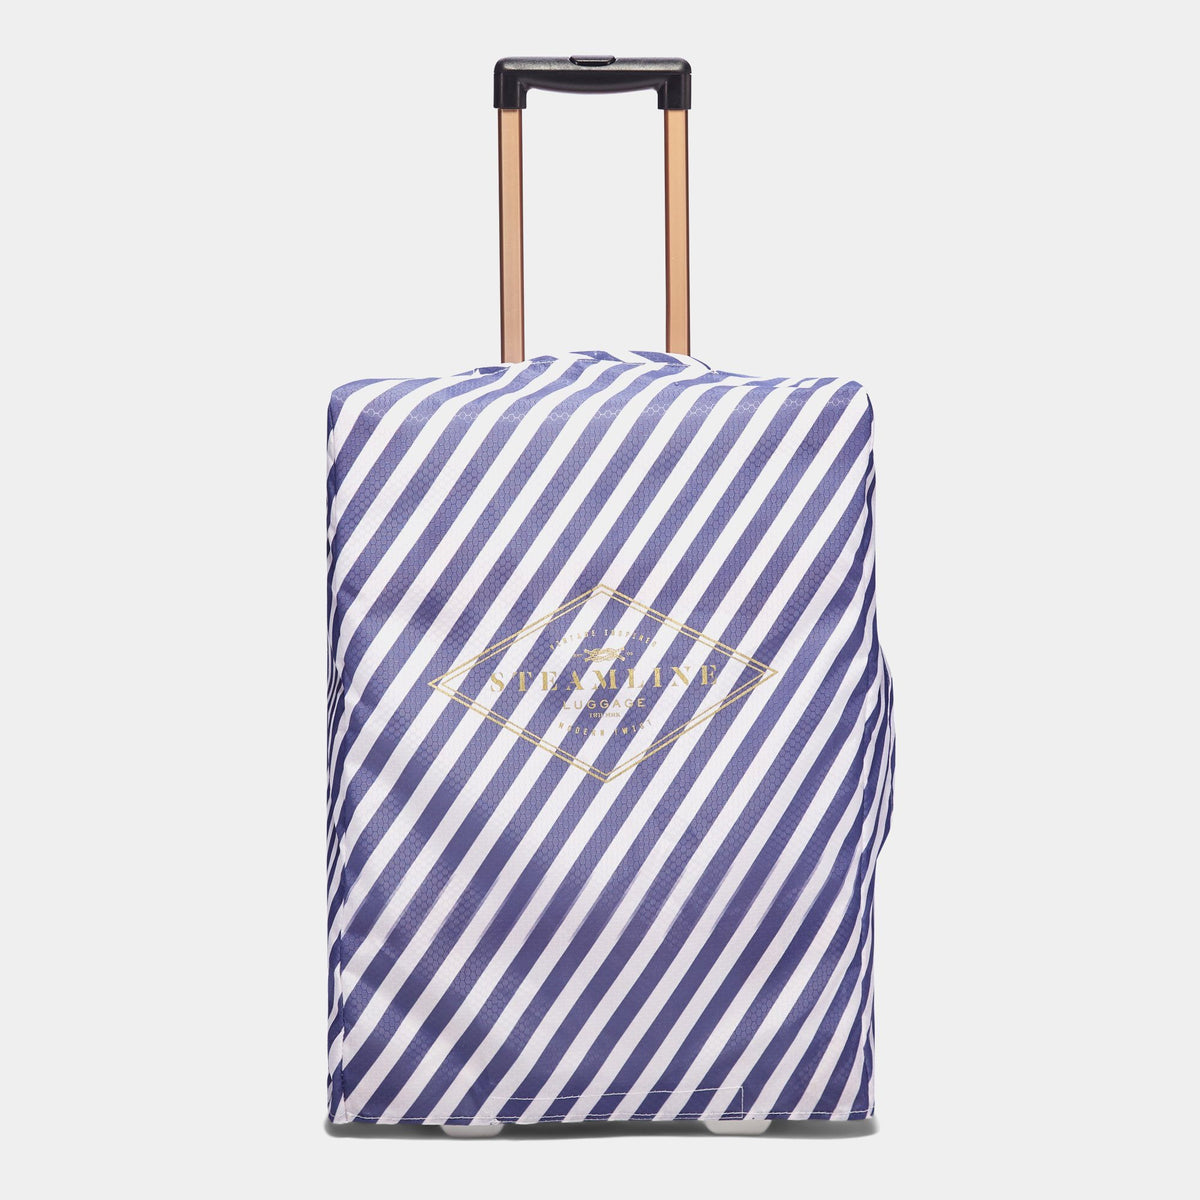 The Signature Stripe Protective Cover - Carryon Size